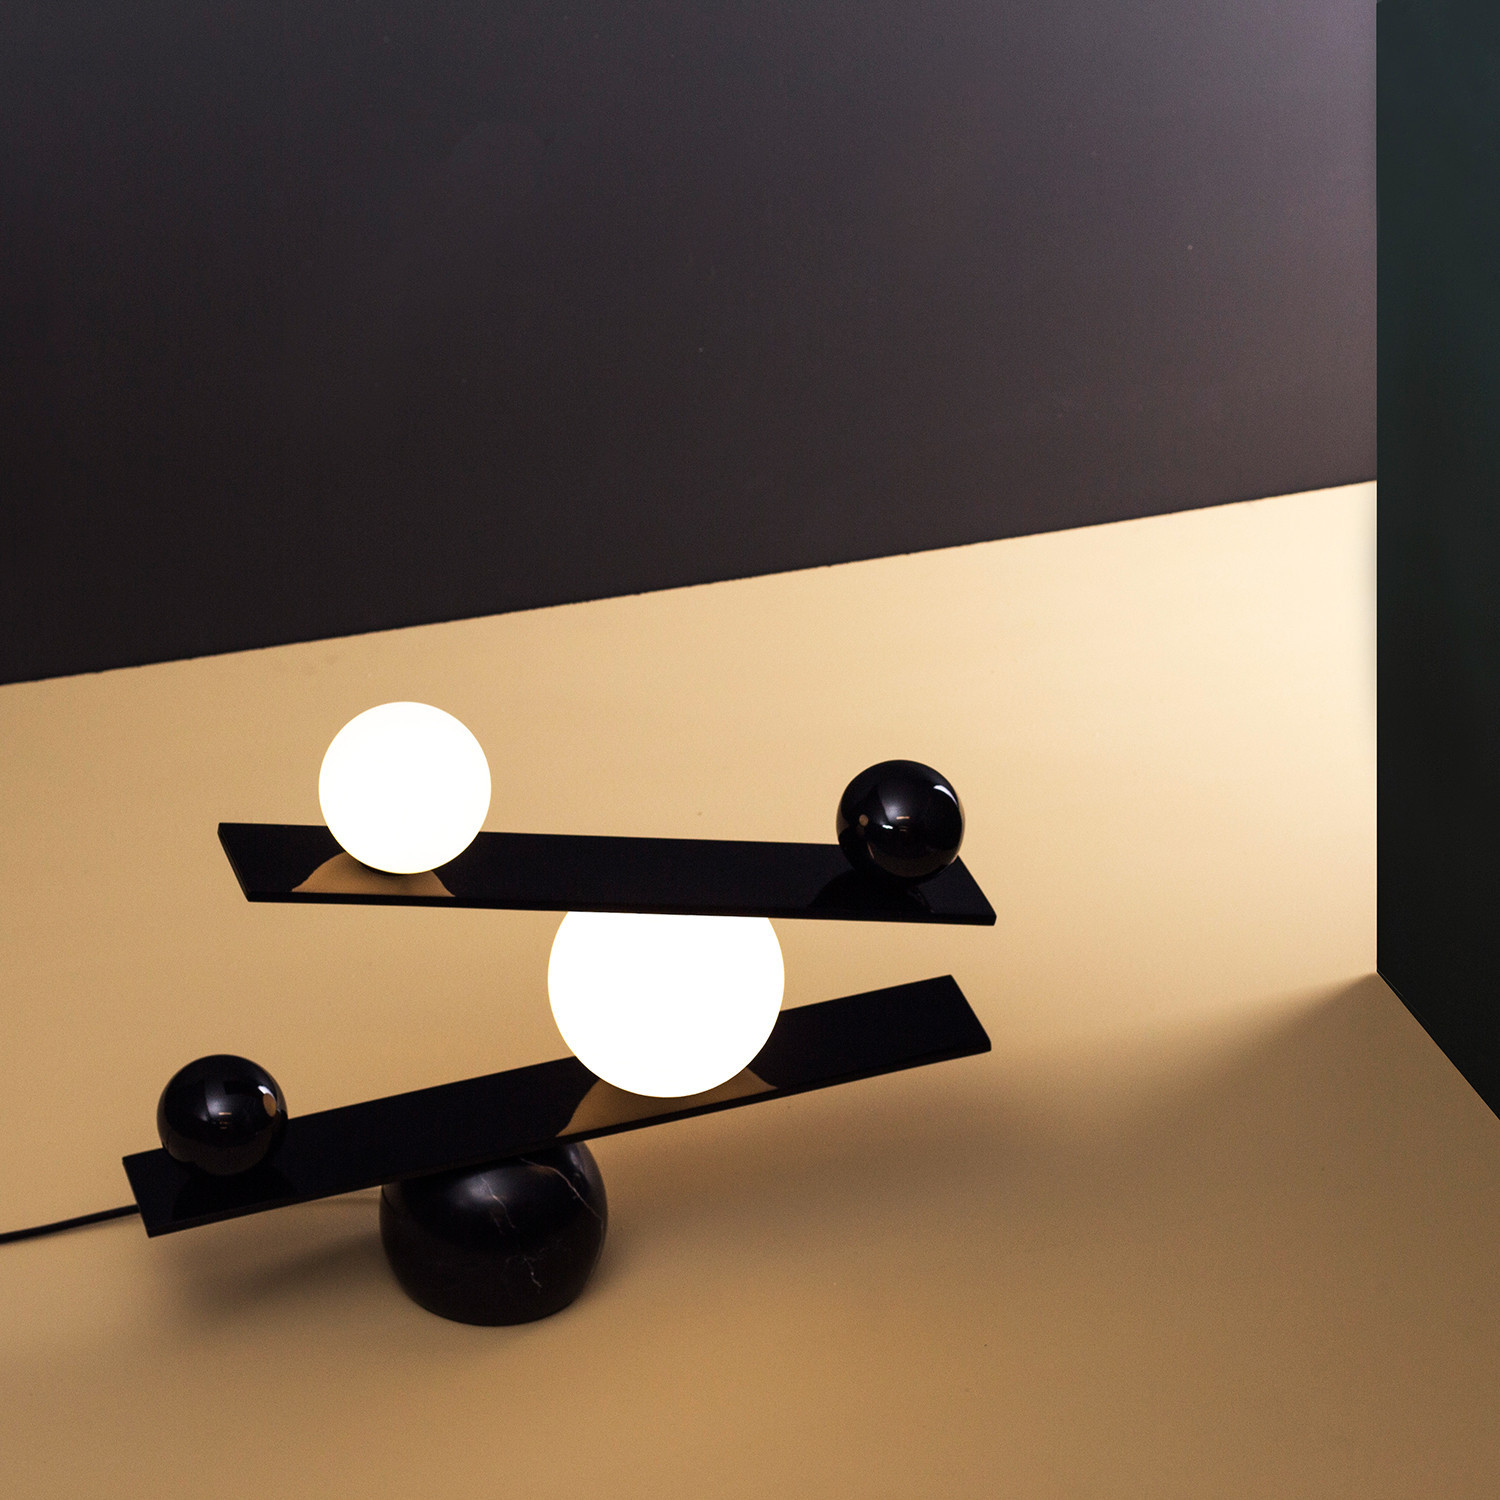 Elegant Balance Lamp Evoking the Fragility of Life (5 pics)